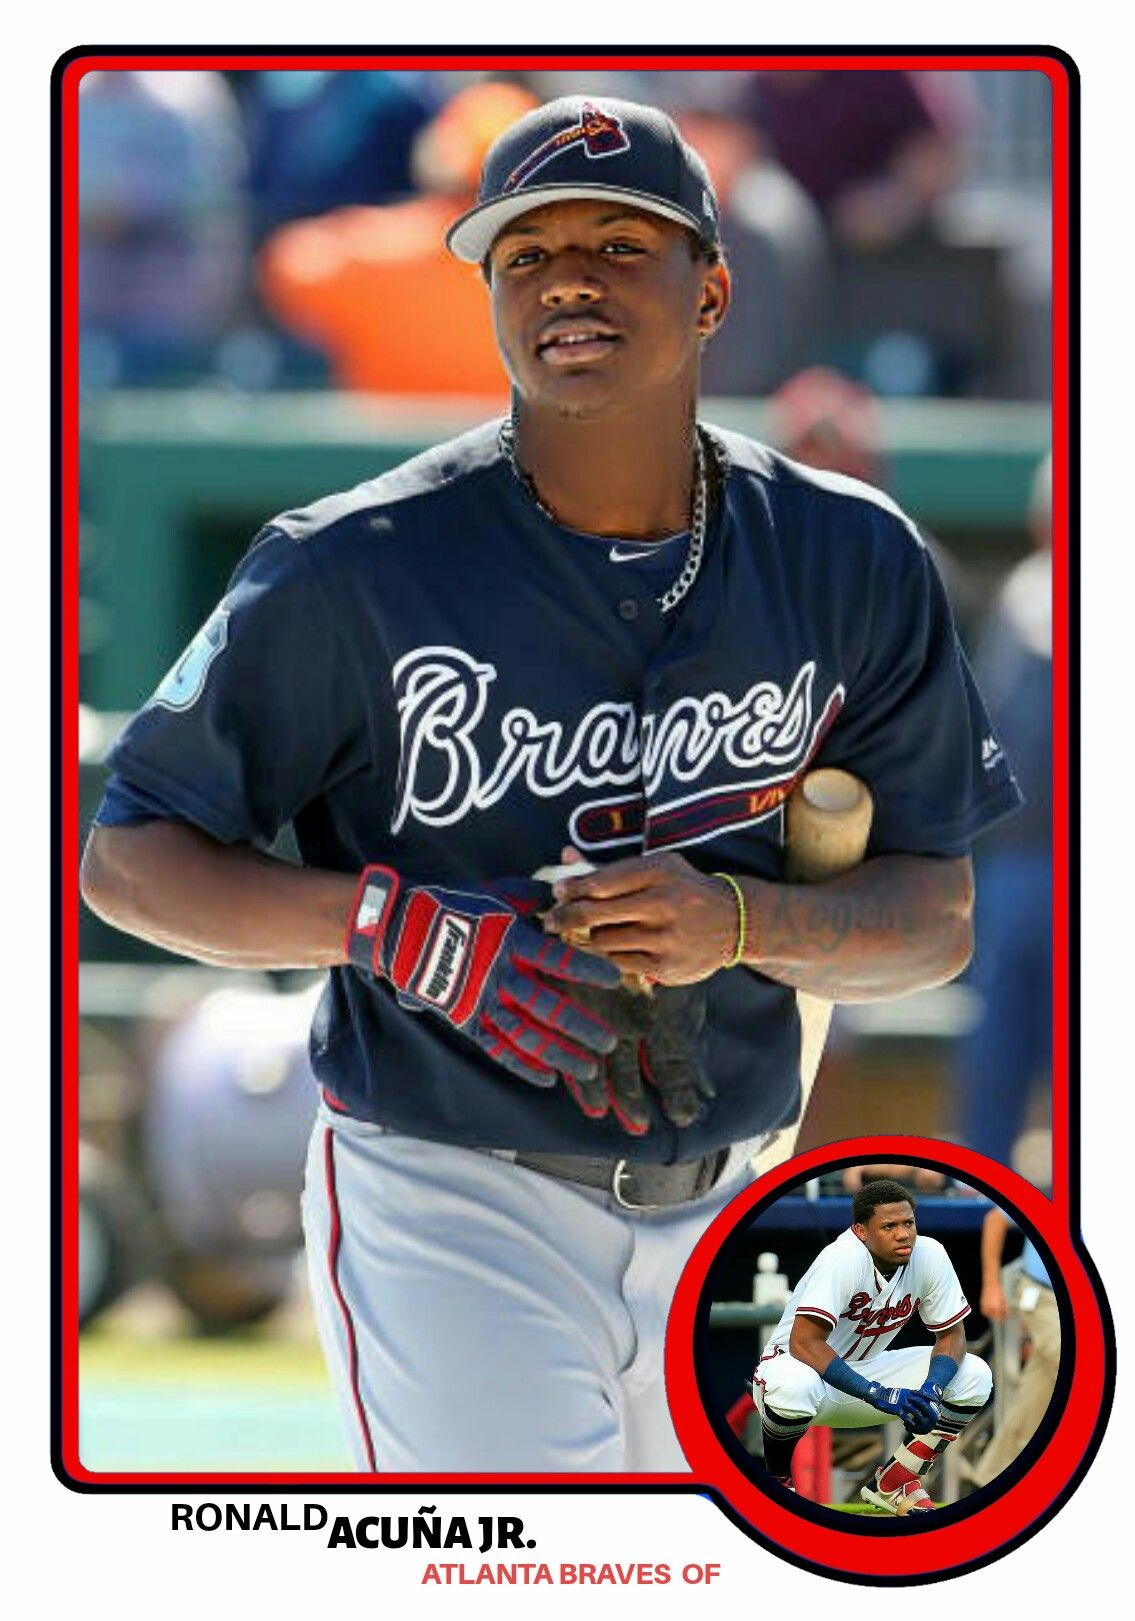 2019 Old School Style Baseball Cards Ronald Acuna Jr Atlanta Braves Atlanta Braves Baseball Atlanta Braves Wallpaper